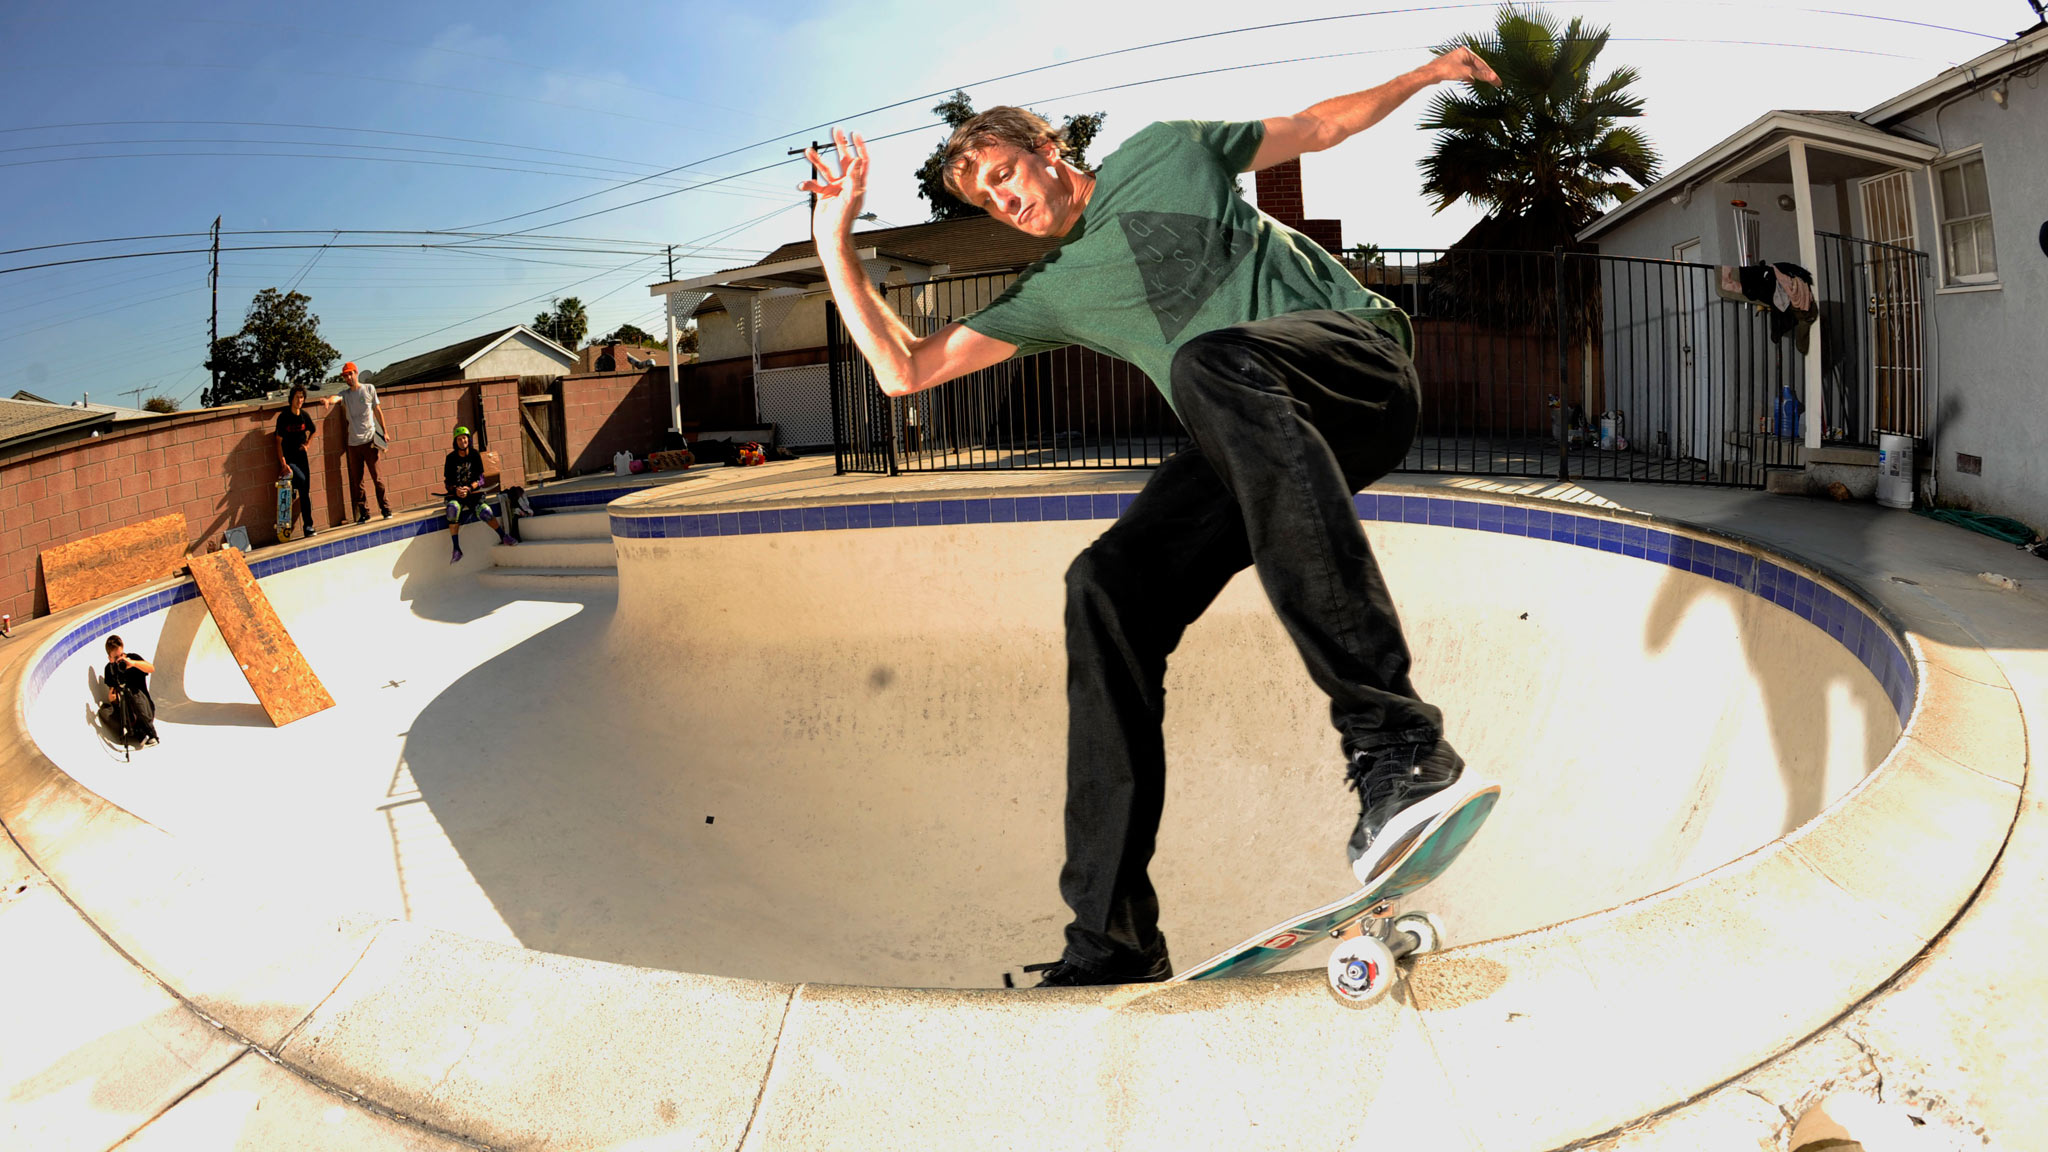 Tony Hawk smith grinds his Indy's in a backyard pool -- can't get much more classic than that.